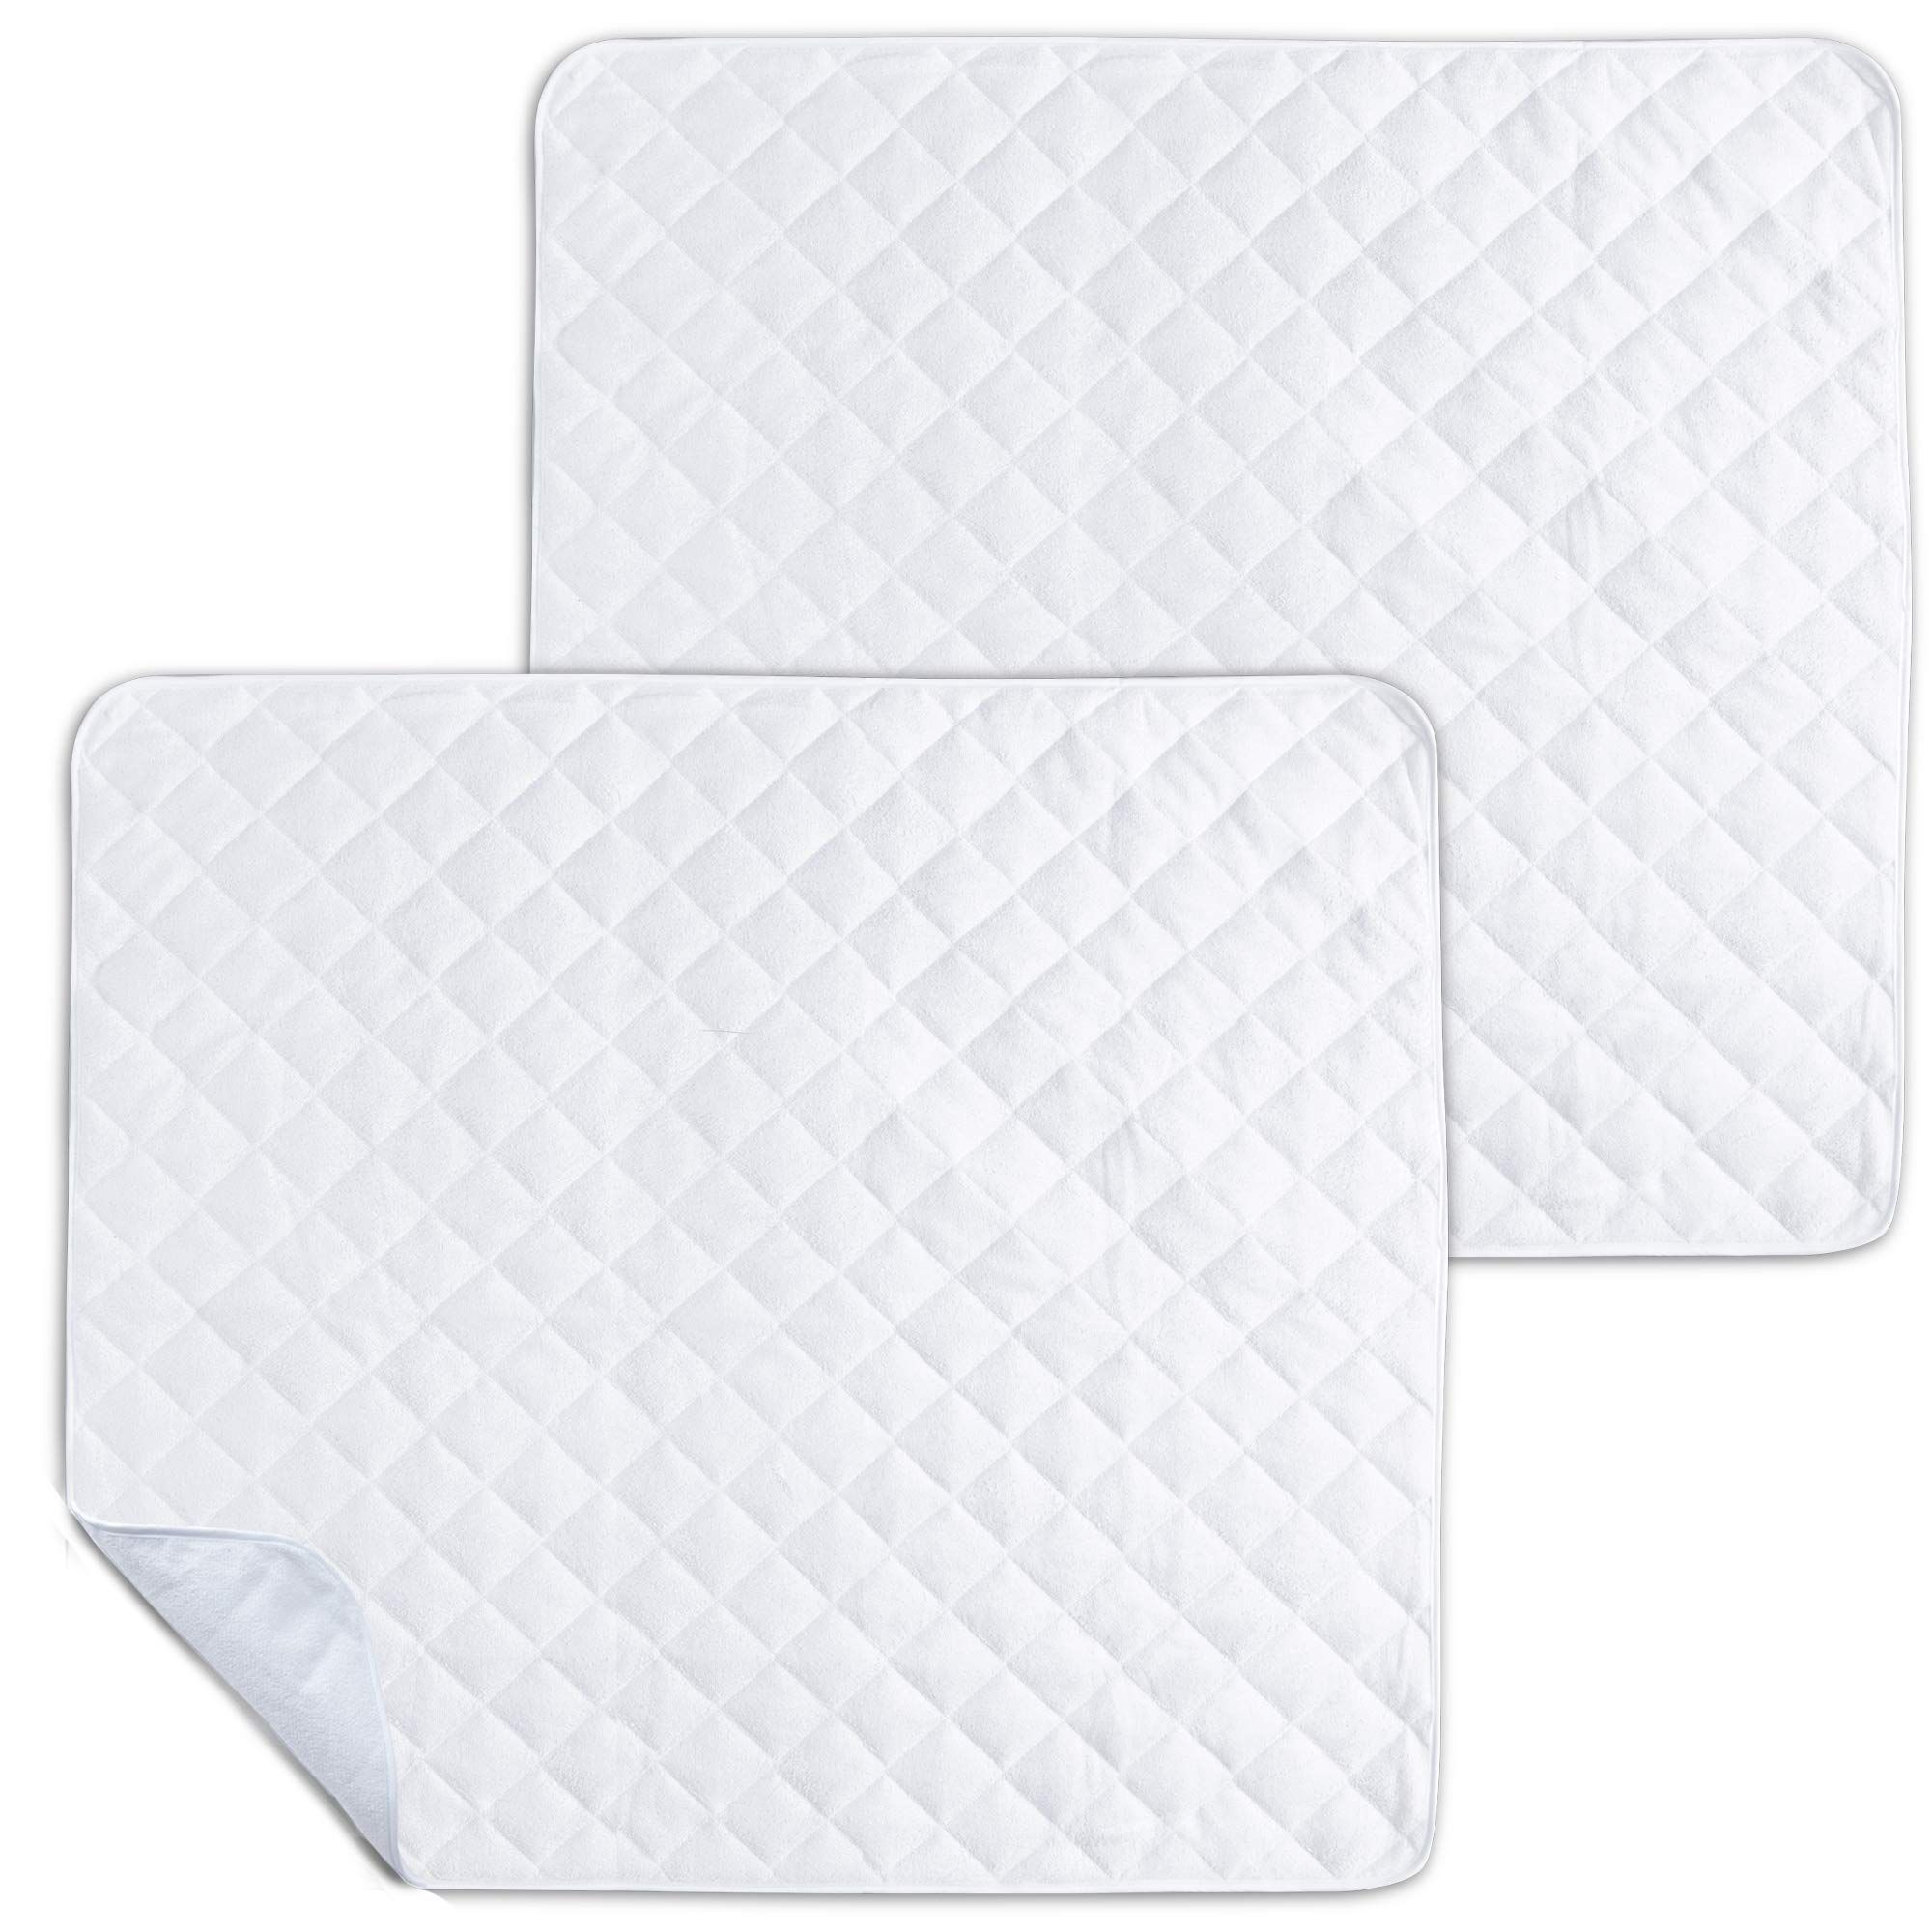 2 Pack Waterproof Bed Pads Mattress and Chair Protective